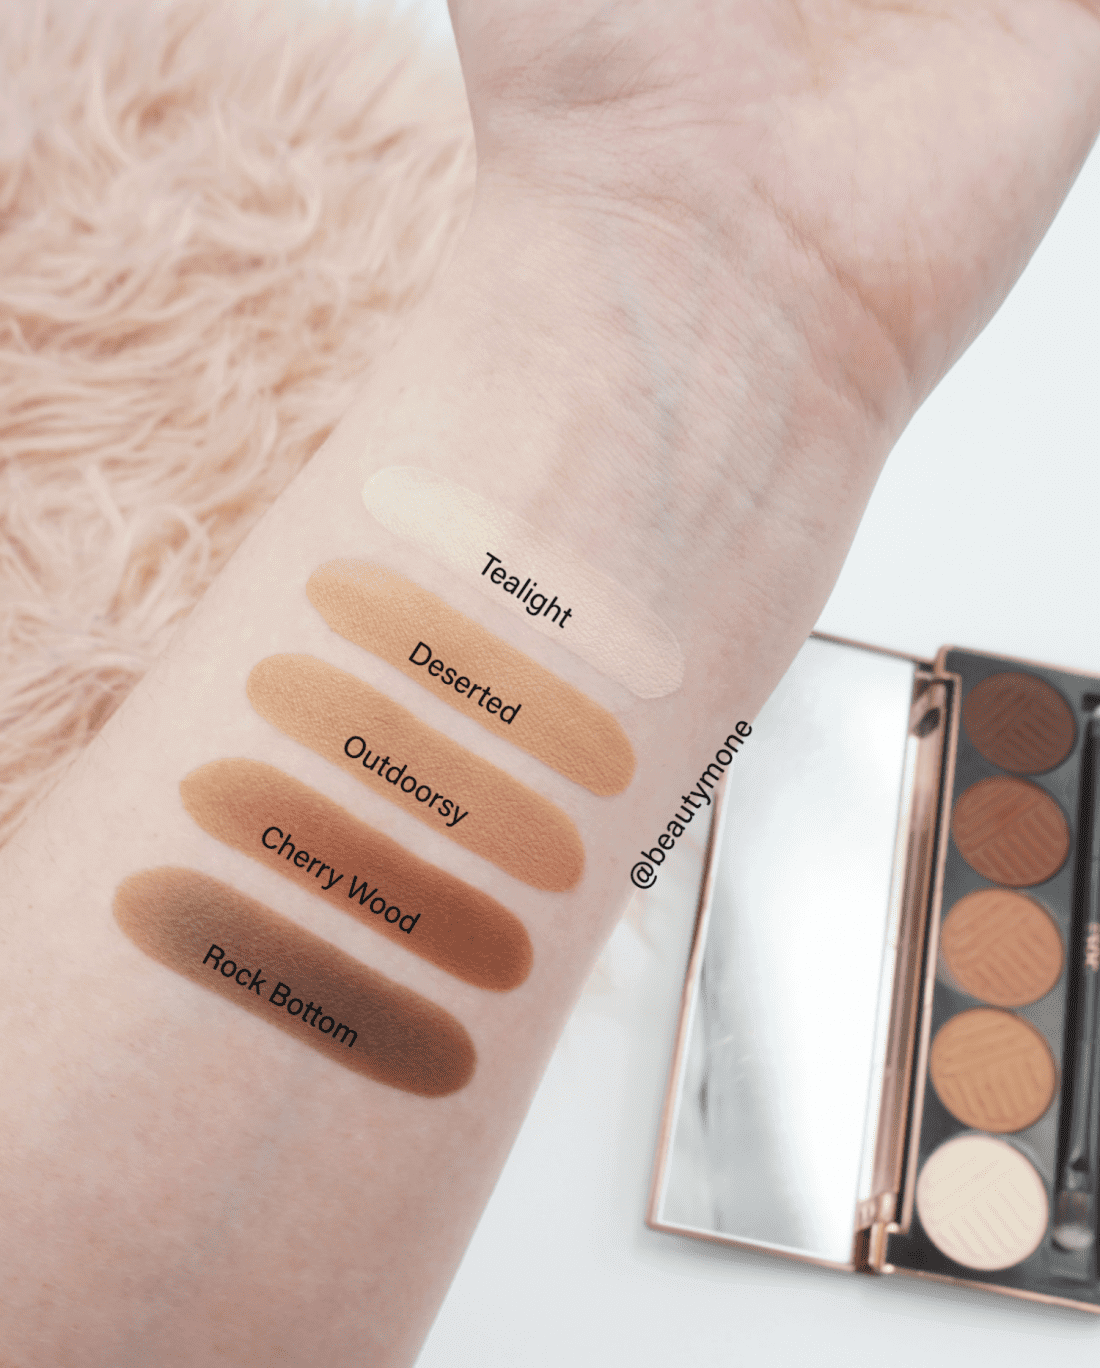 The Stunning Dose of Colors Baked Browns Palette Review ⋆ Beautymone